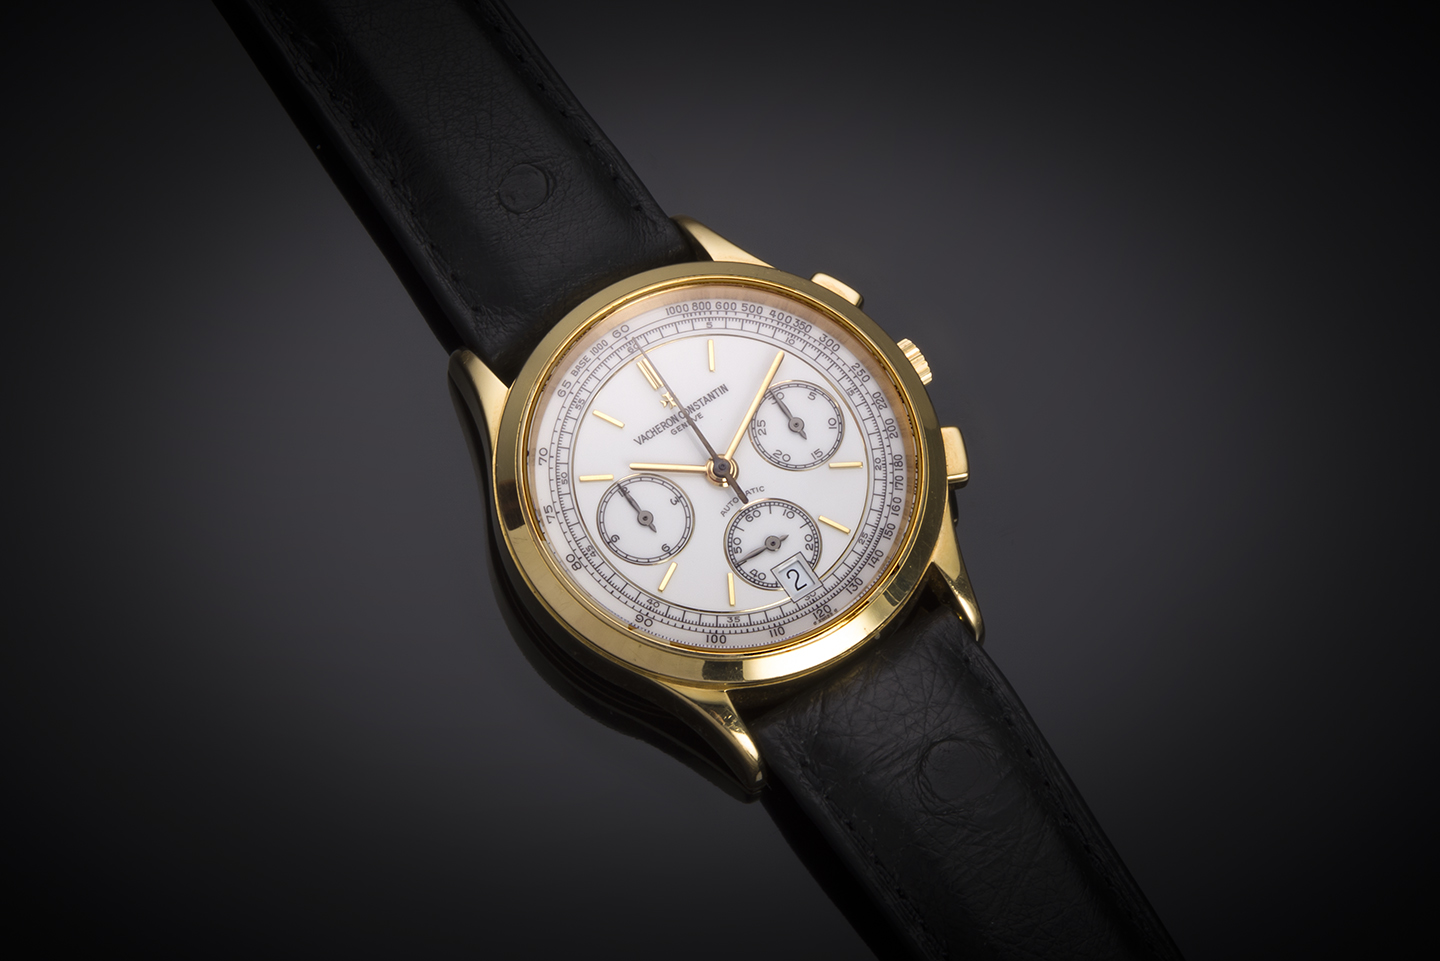 Montre Vacheron Constantin chronographe or-1